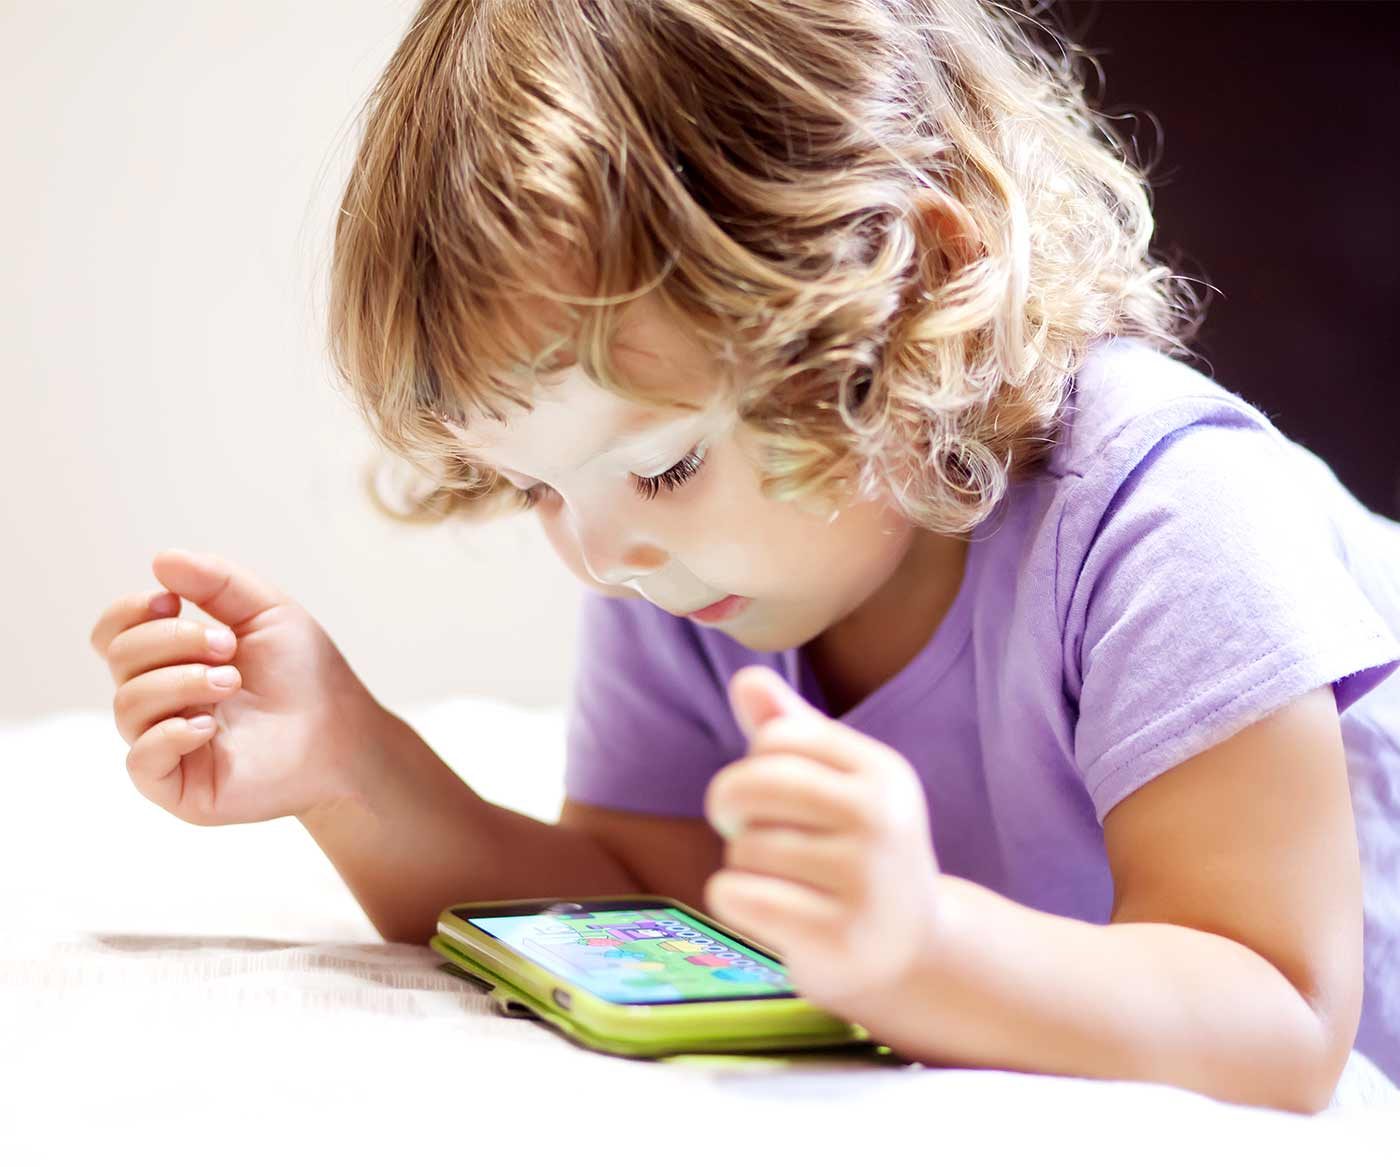 A little girl with a smart phone, redirecting children's behavior